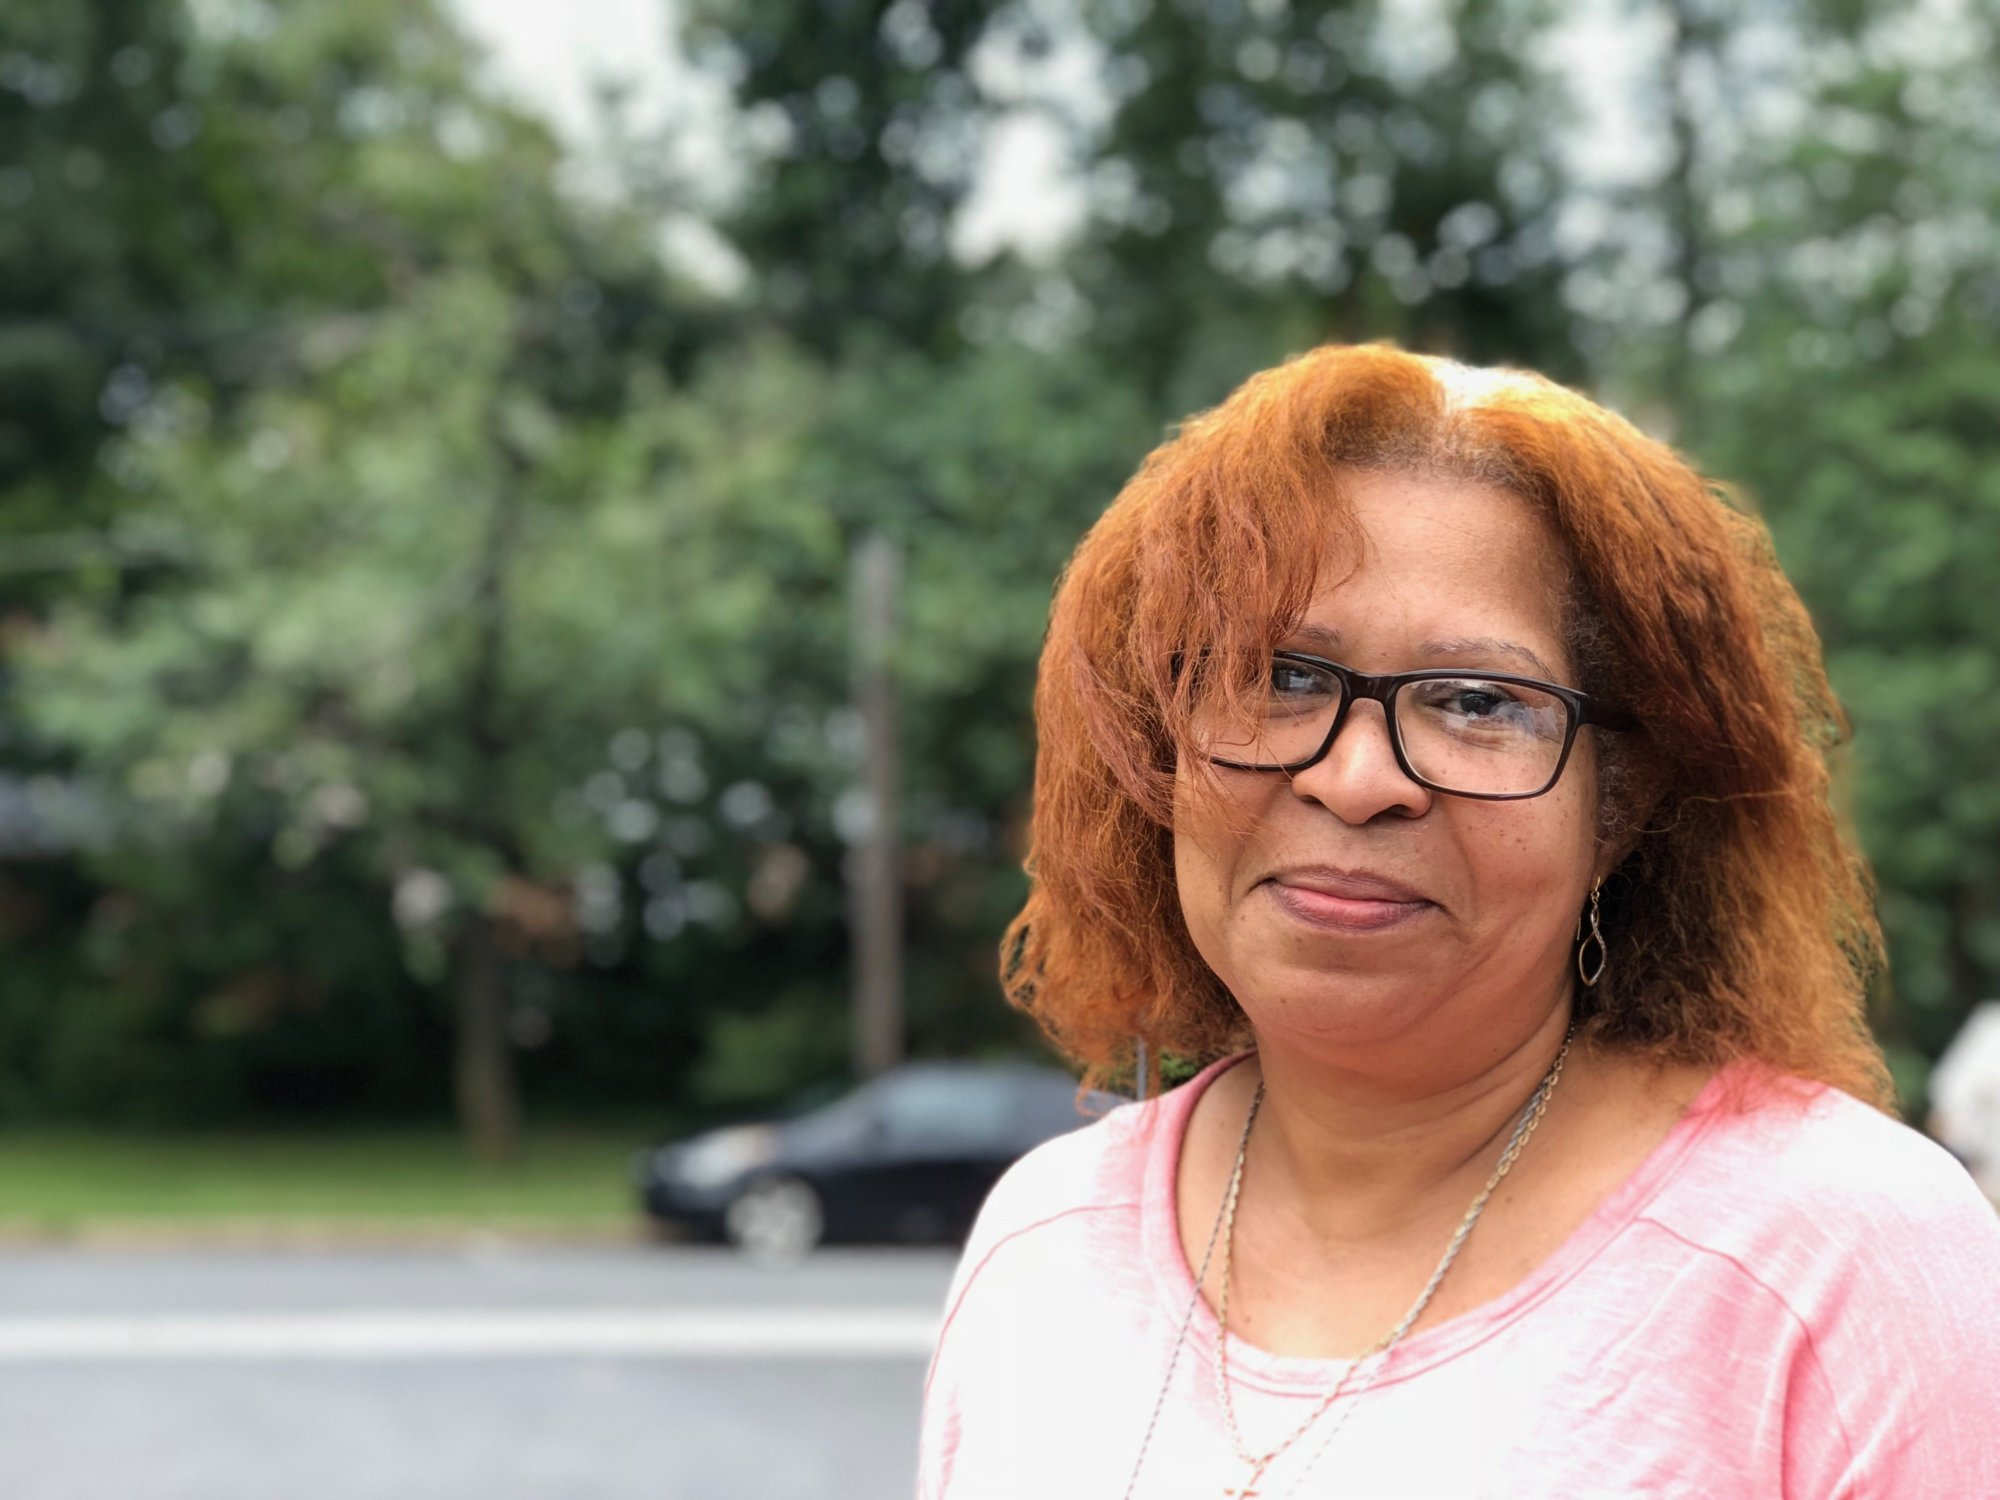 Donna Brown at the Cheverly Farmers Market says she wants added school security and would like more conversations about religious practice in schools (WTOP/Kate Ryan).